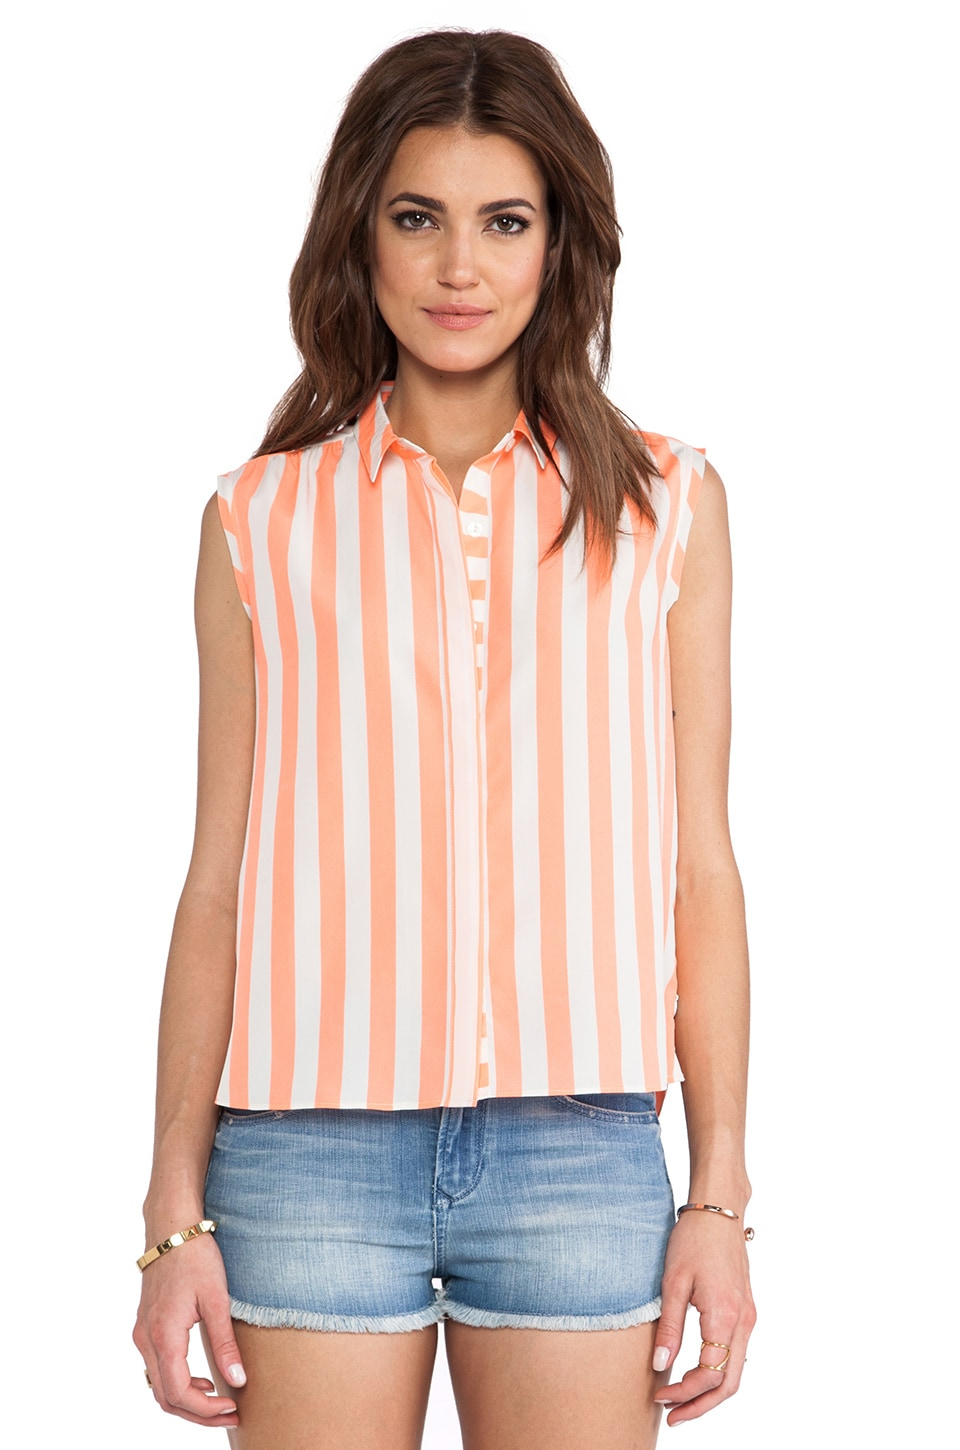 Maison Scotch Stripe Button Up in Orange & White